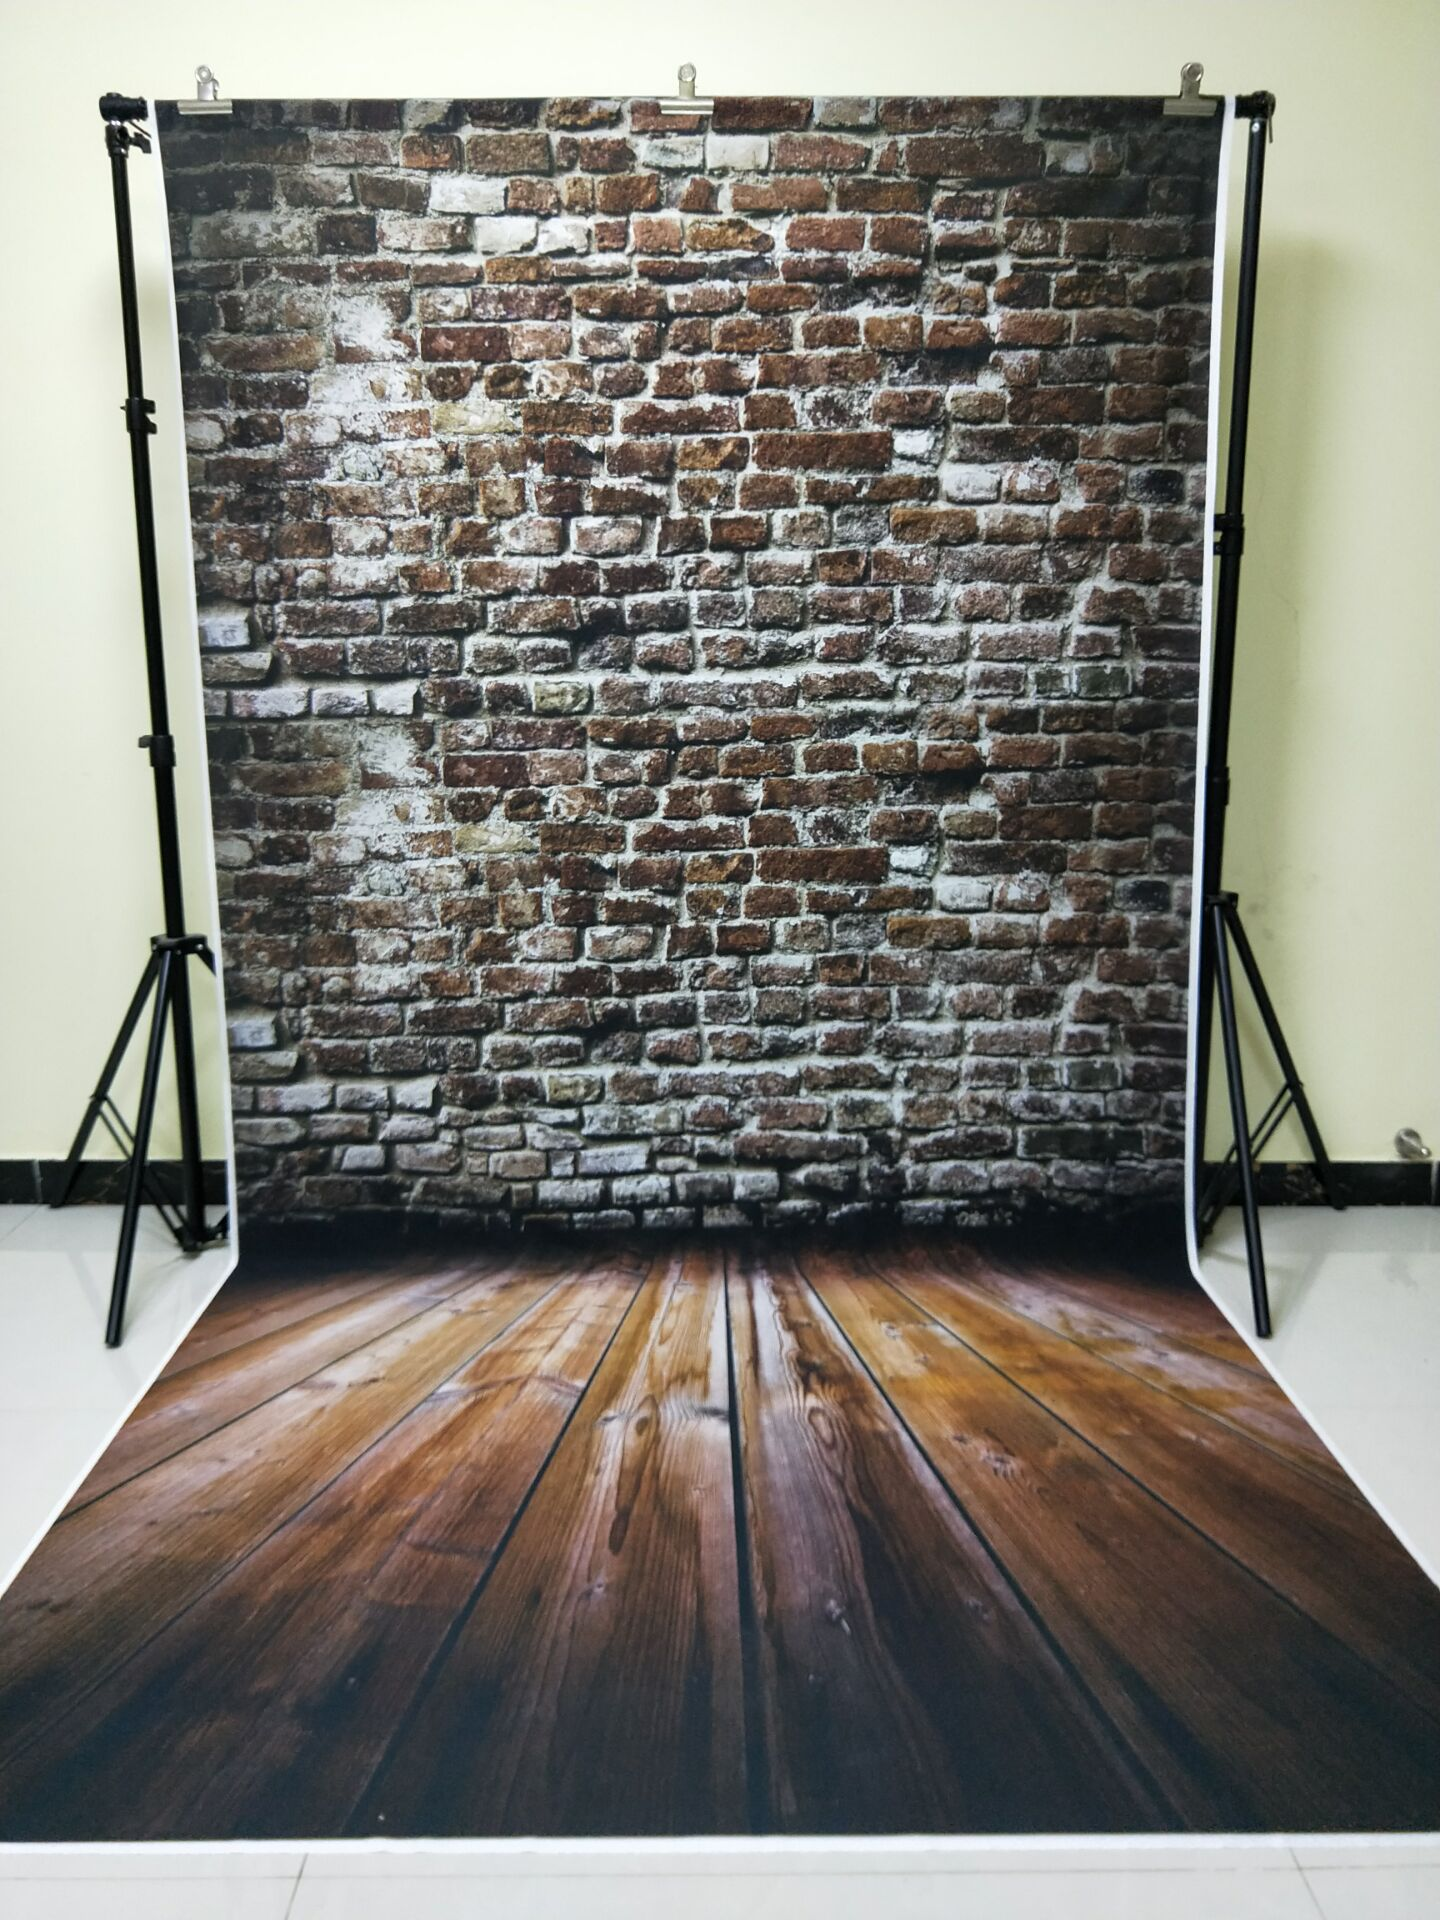 HUAYI 5x10ft Cotton Polyester Brick Wall Photography Backdrop Washable Photo Studios Baby Props Background KP-371 huayi 4pc 2x2ft wood floor brick wall backdrop vinyl photography backdrops photo props background small object shooting gy 019